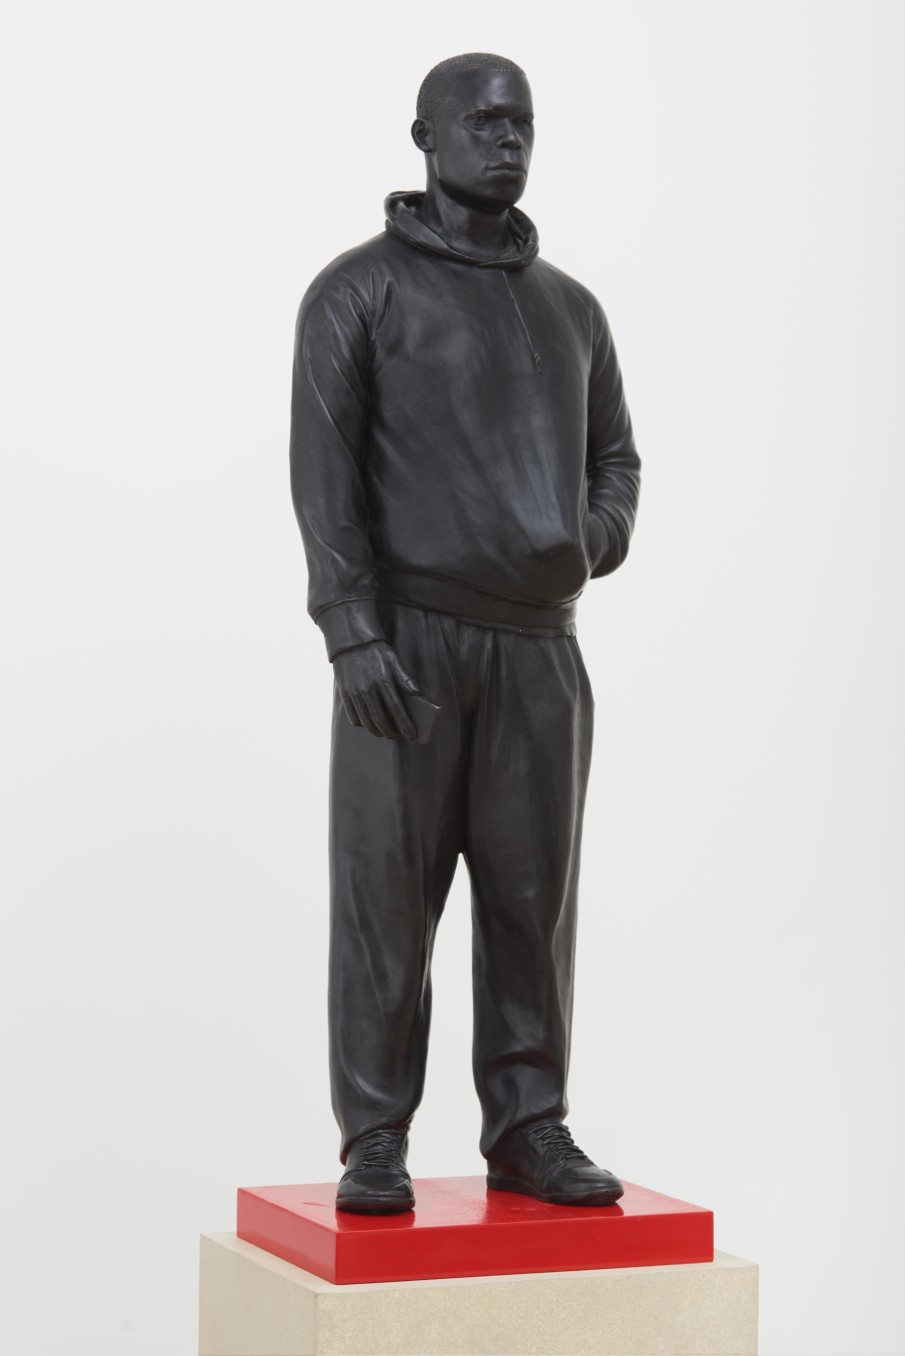 Thomas J Price, Plain to See, 2015, Bronze, perspex and concrete plinth, Overall: 172.4 x 36 x 36 cm, 67 7/8 x 14 1/8 x 14 1/8 in, Bronze (including screws on the bottom): 69 x 23 x 14 cm, 27 1/8 x 9 1/8 x 5 1/2 in, Base: 3.2 x 26 x 26 cm, 1 1/4 x 10 1/4